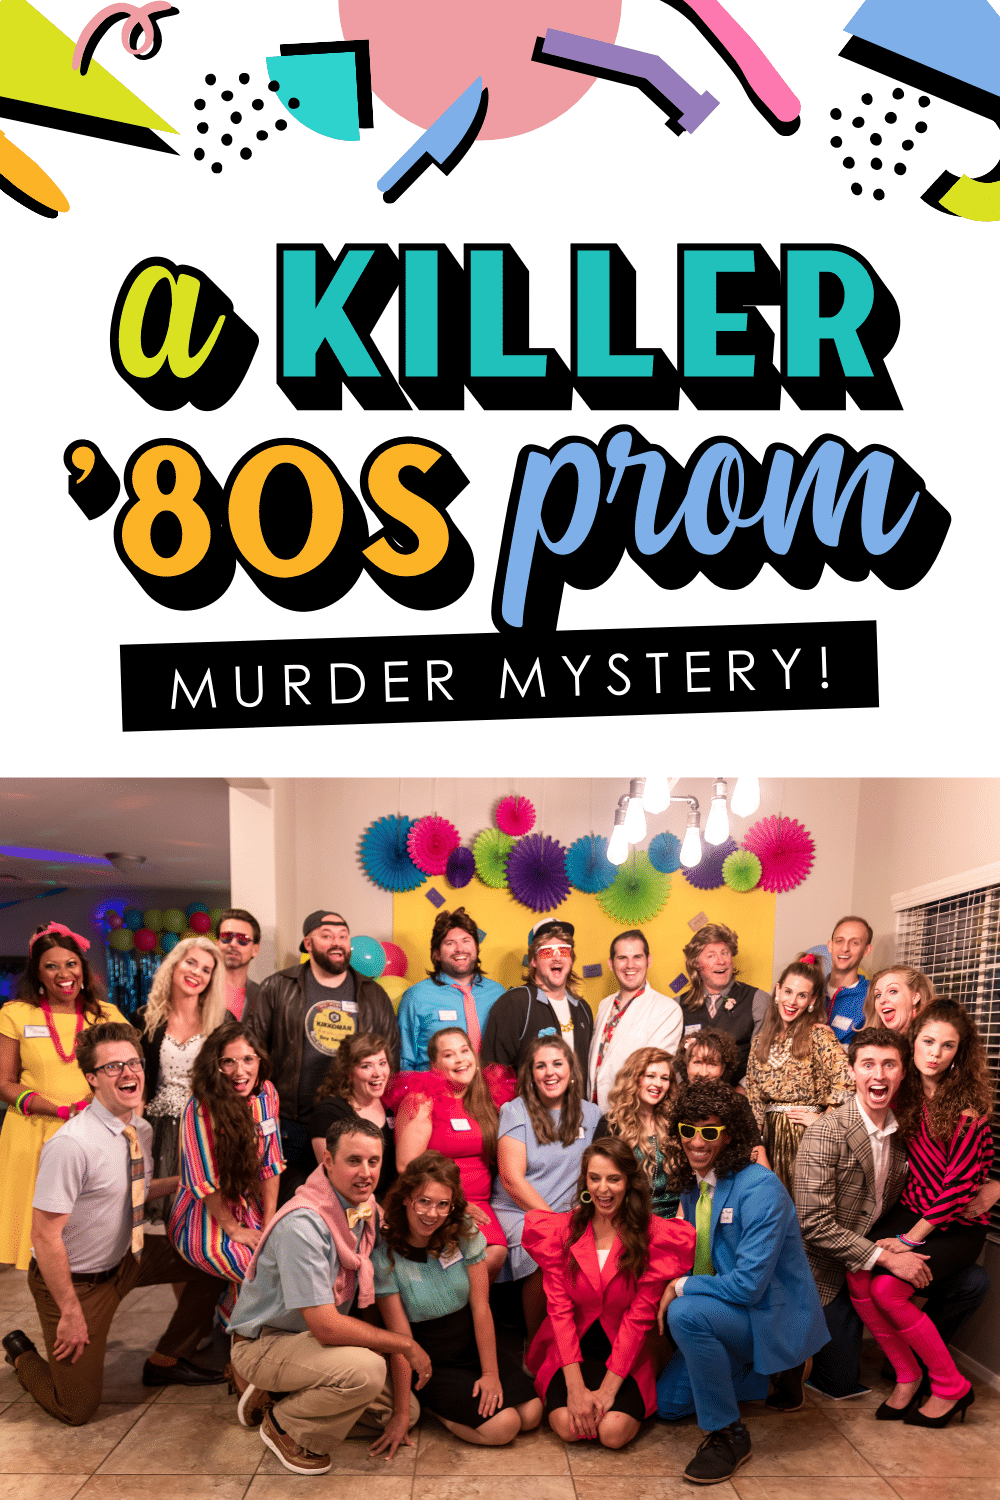 This sounds like the BEST murder mystery game! Prom in the 80s! Amazing!  The Dating Divas #MurderMystery #MurderMysteryGame #MurderMysteryApp